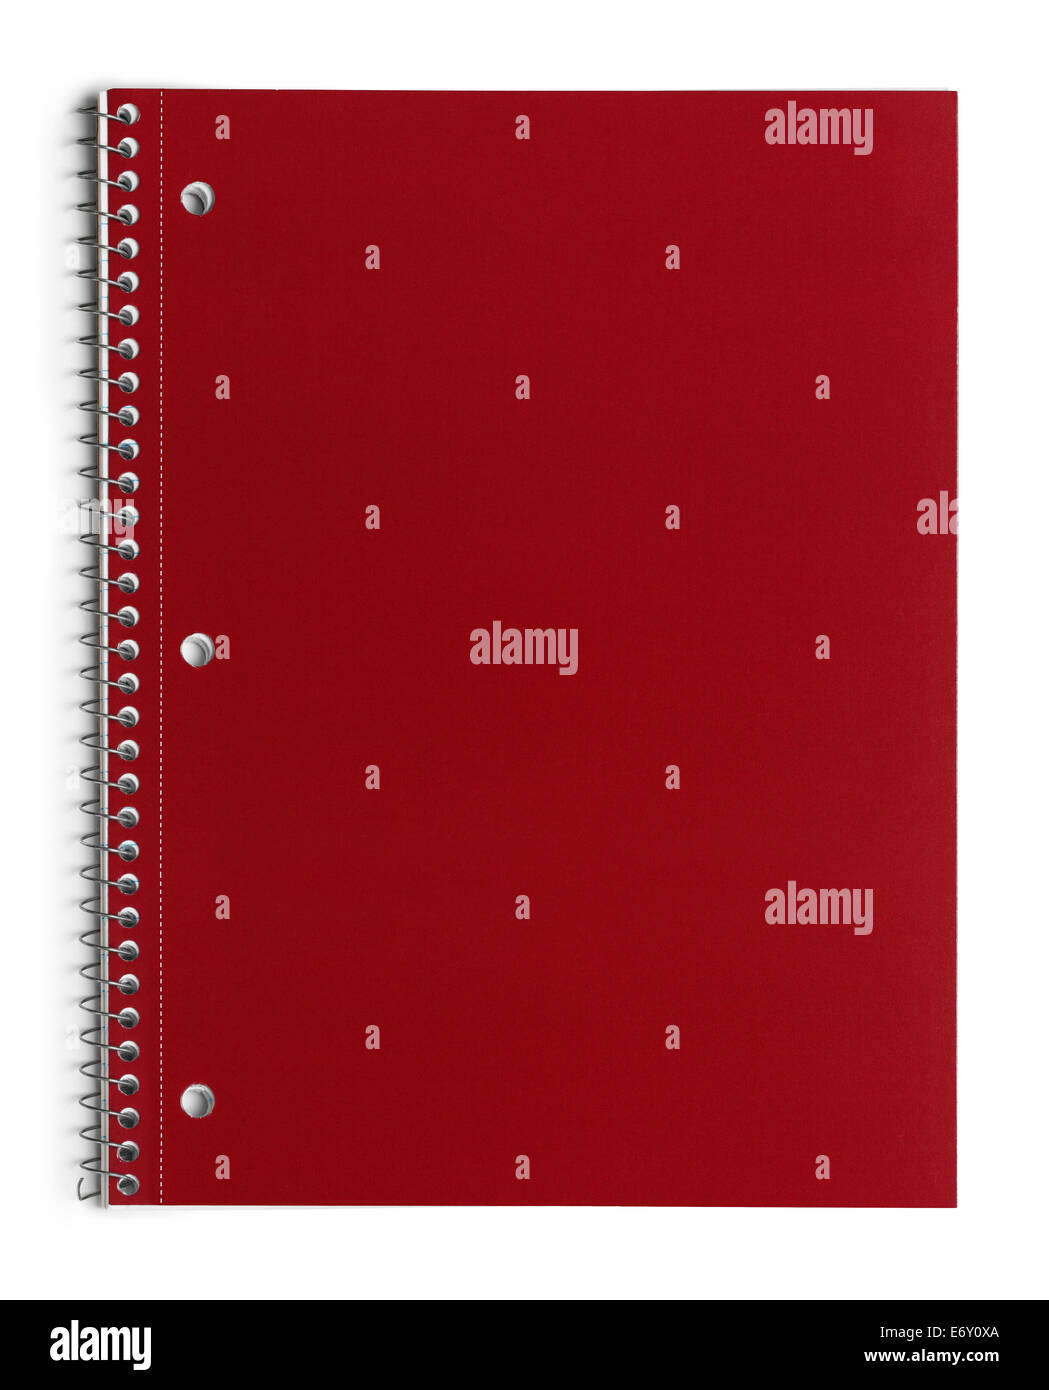 Red School Line Paper Spiral Notebook Isolated on White Background. Stock Photo